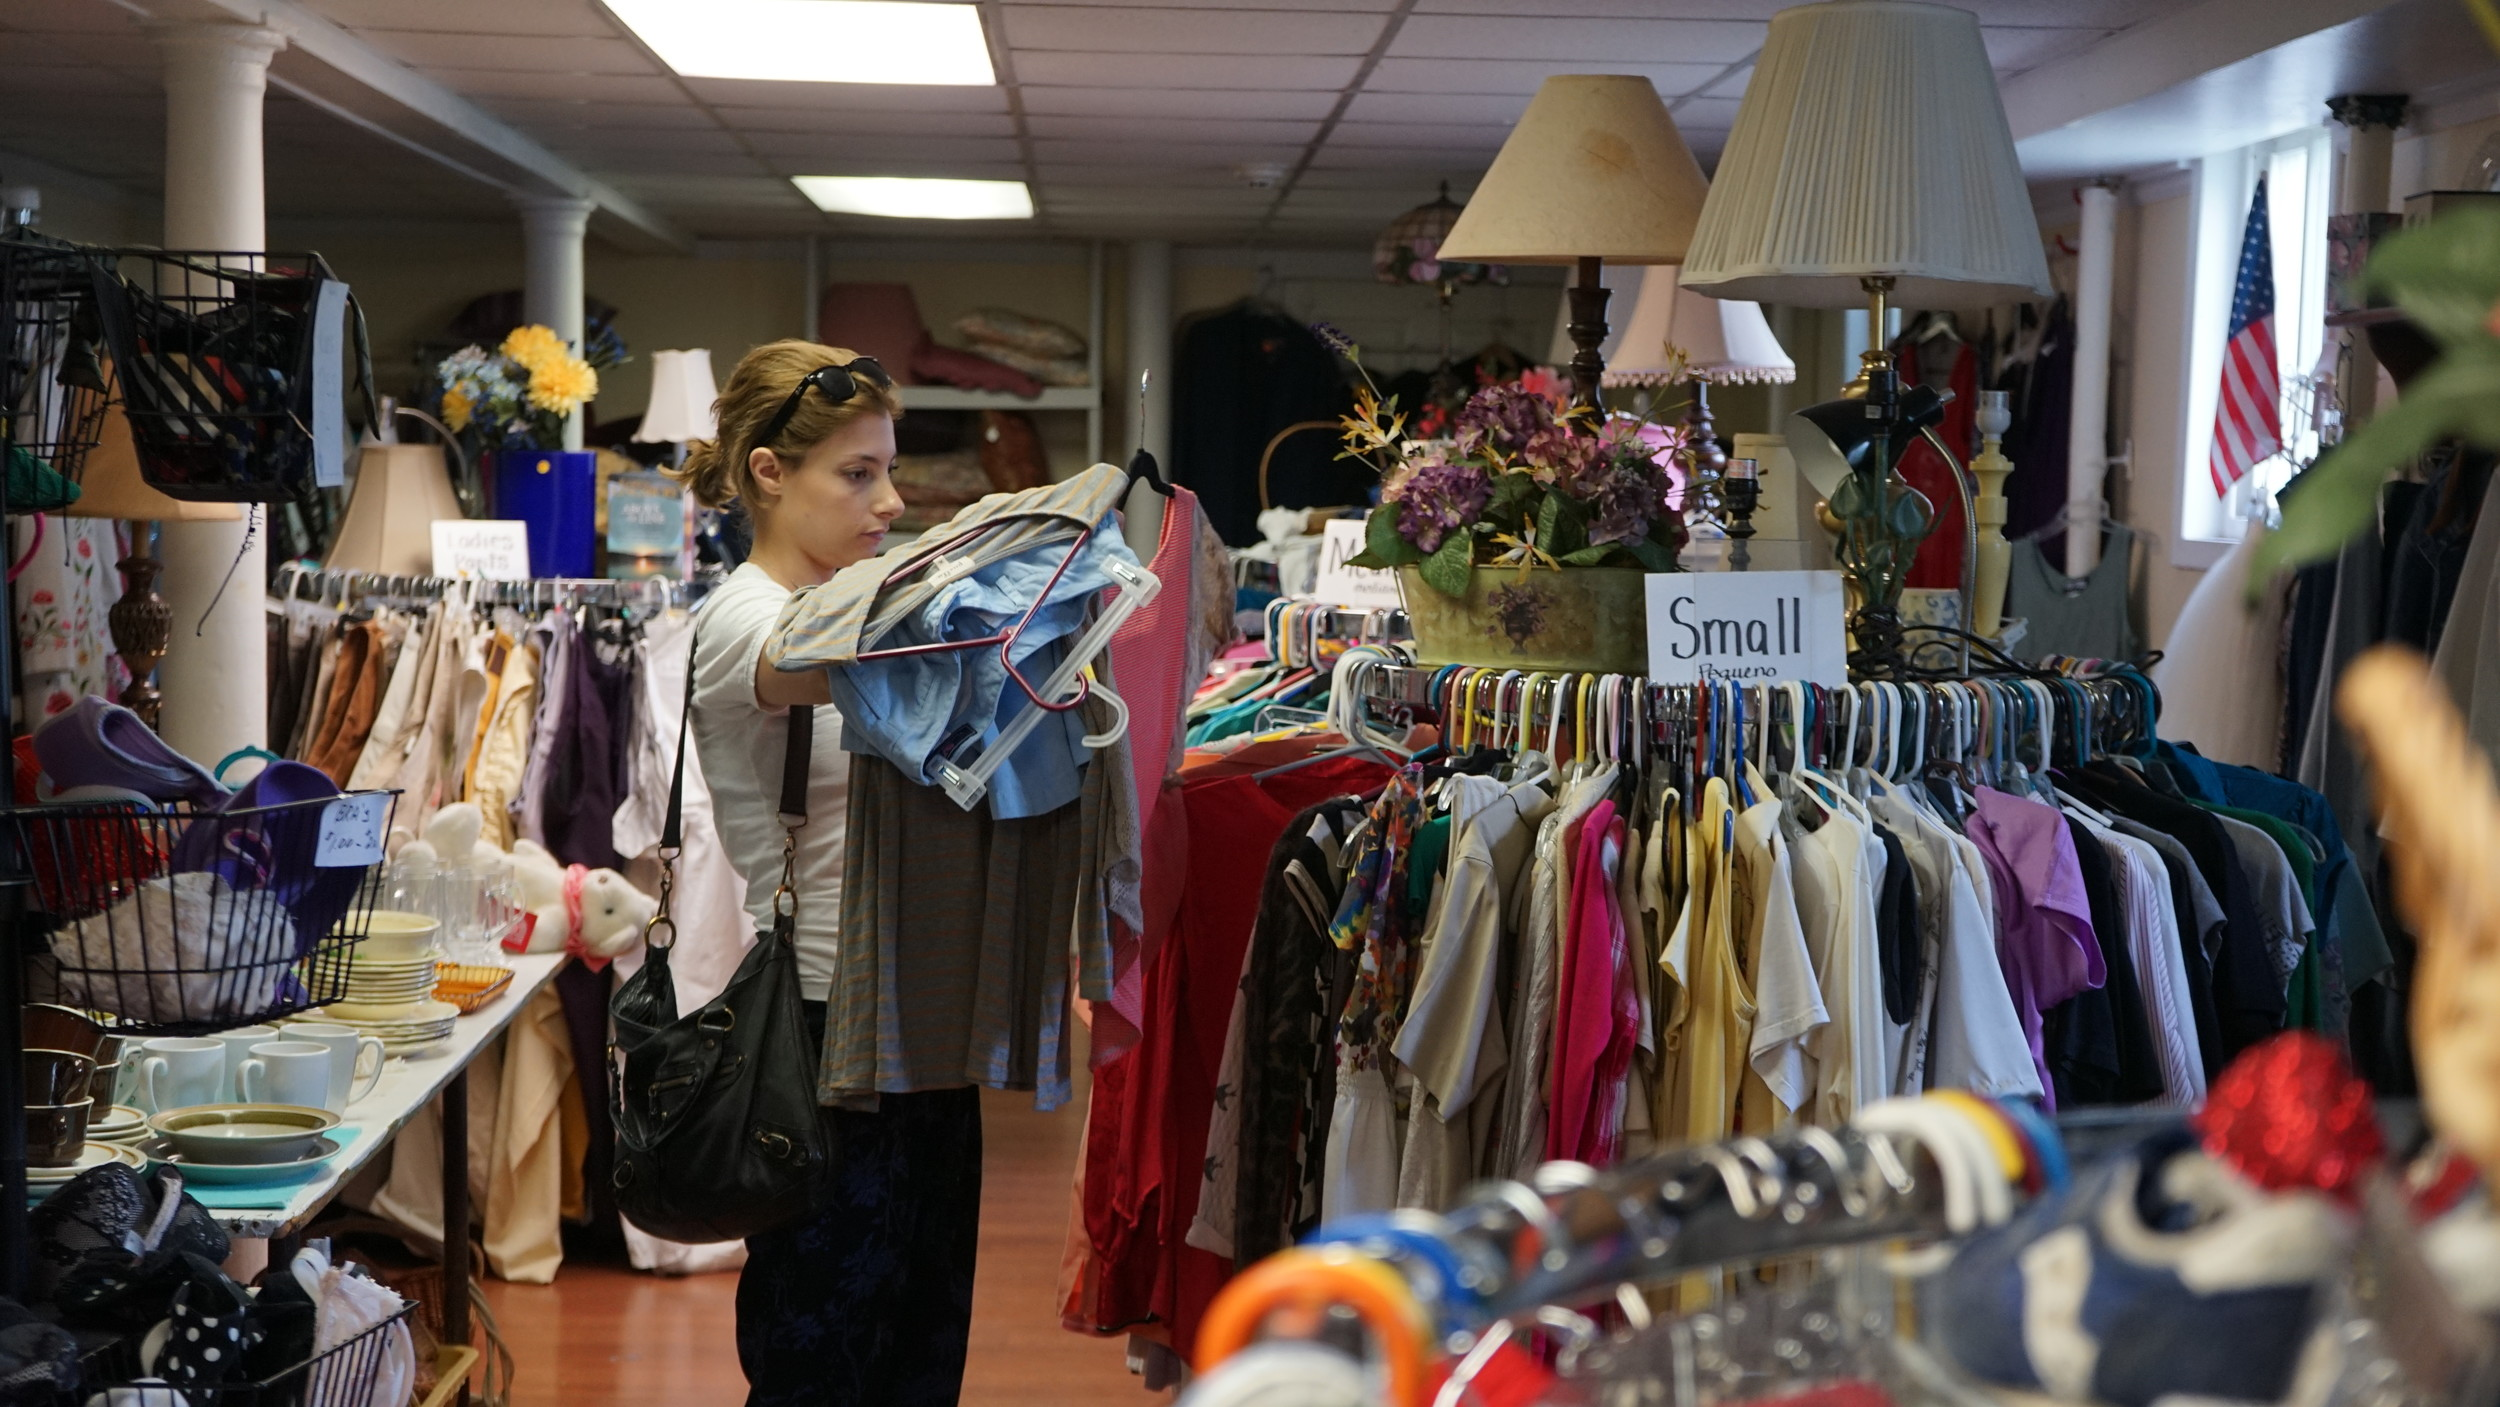 A customer browsed for treasures at the church's thrift store.